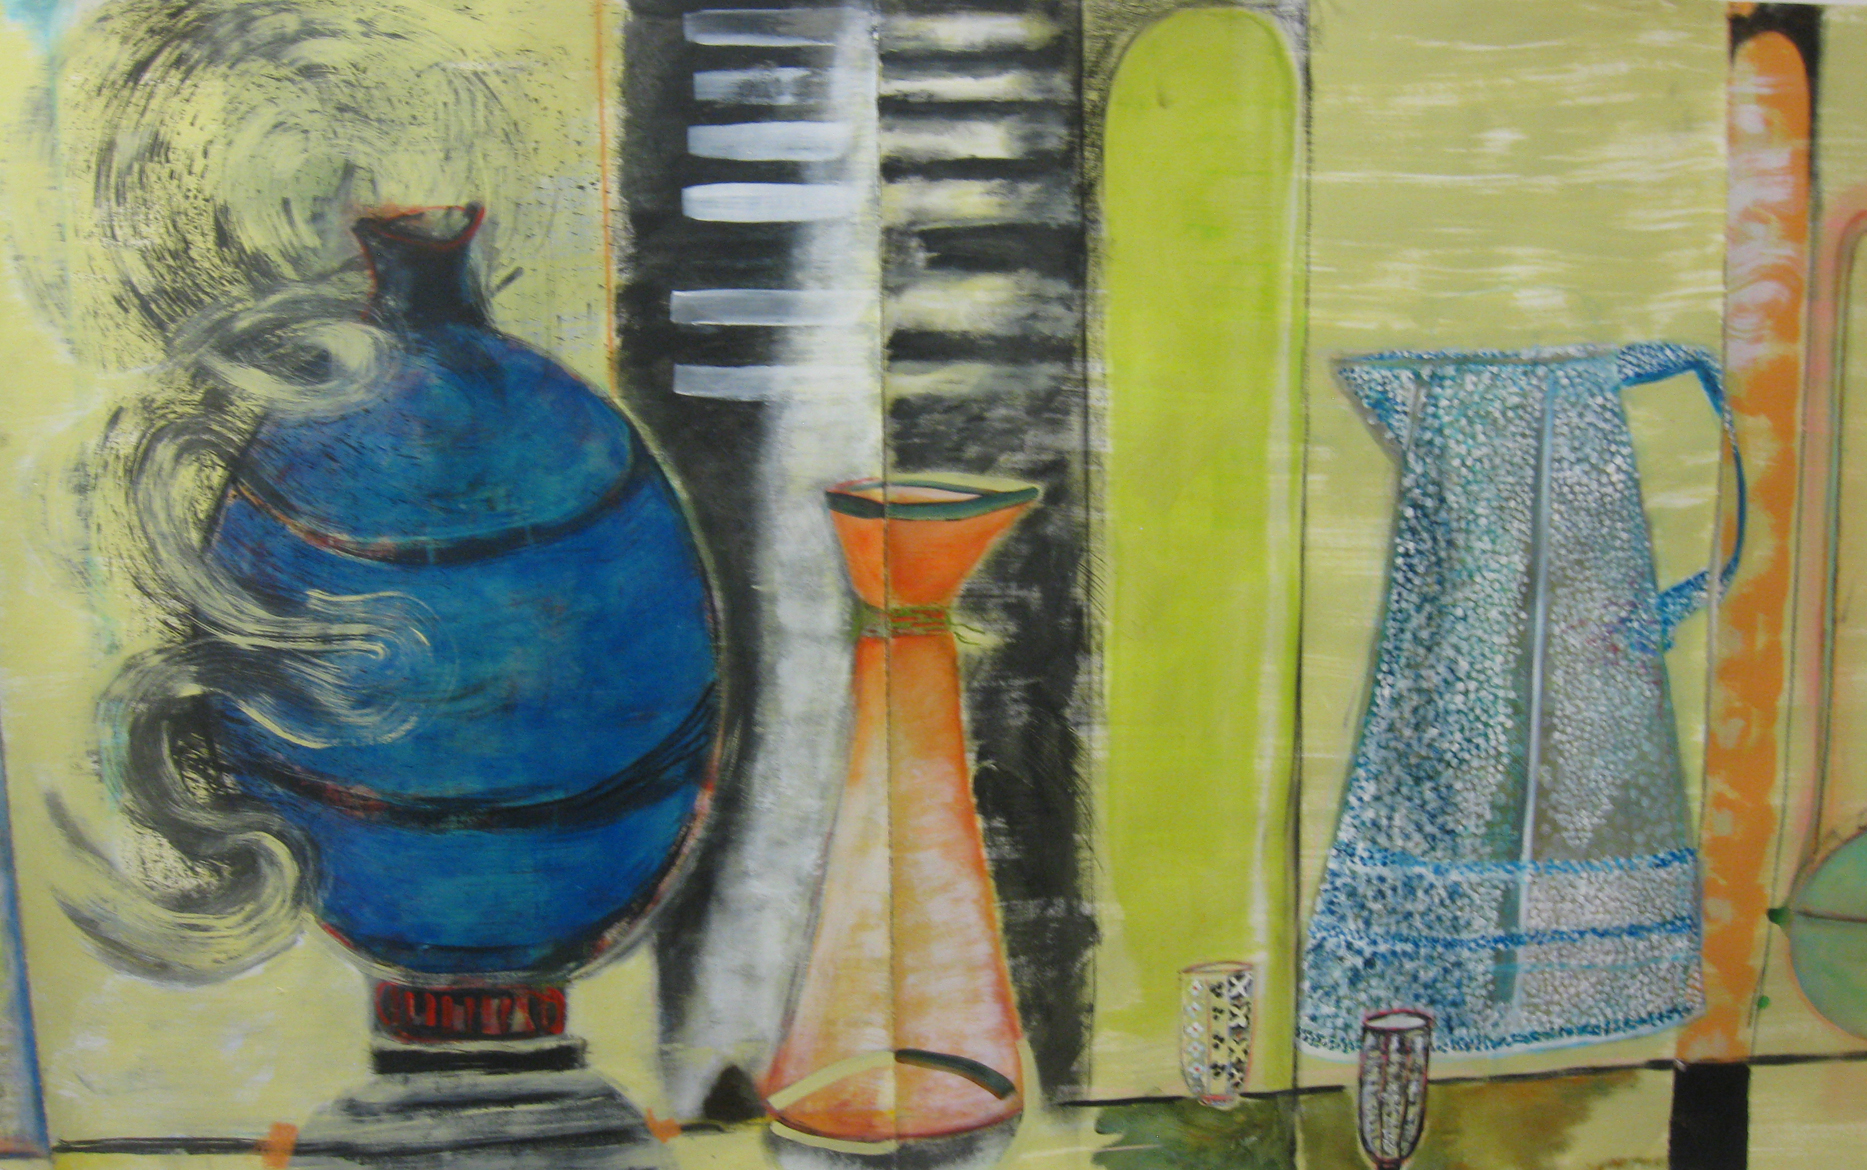 Vessels by Cynthia Miller